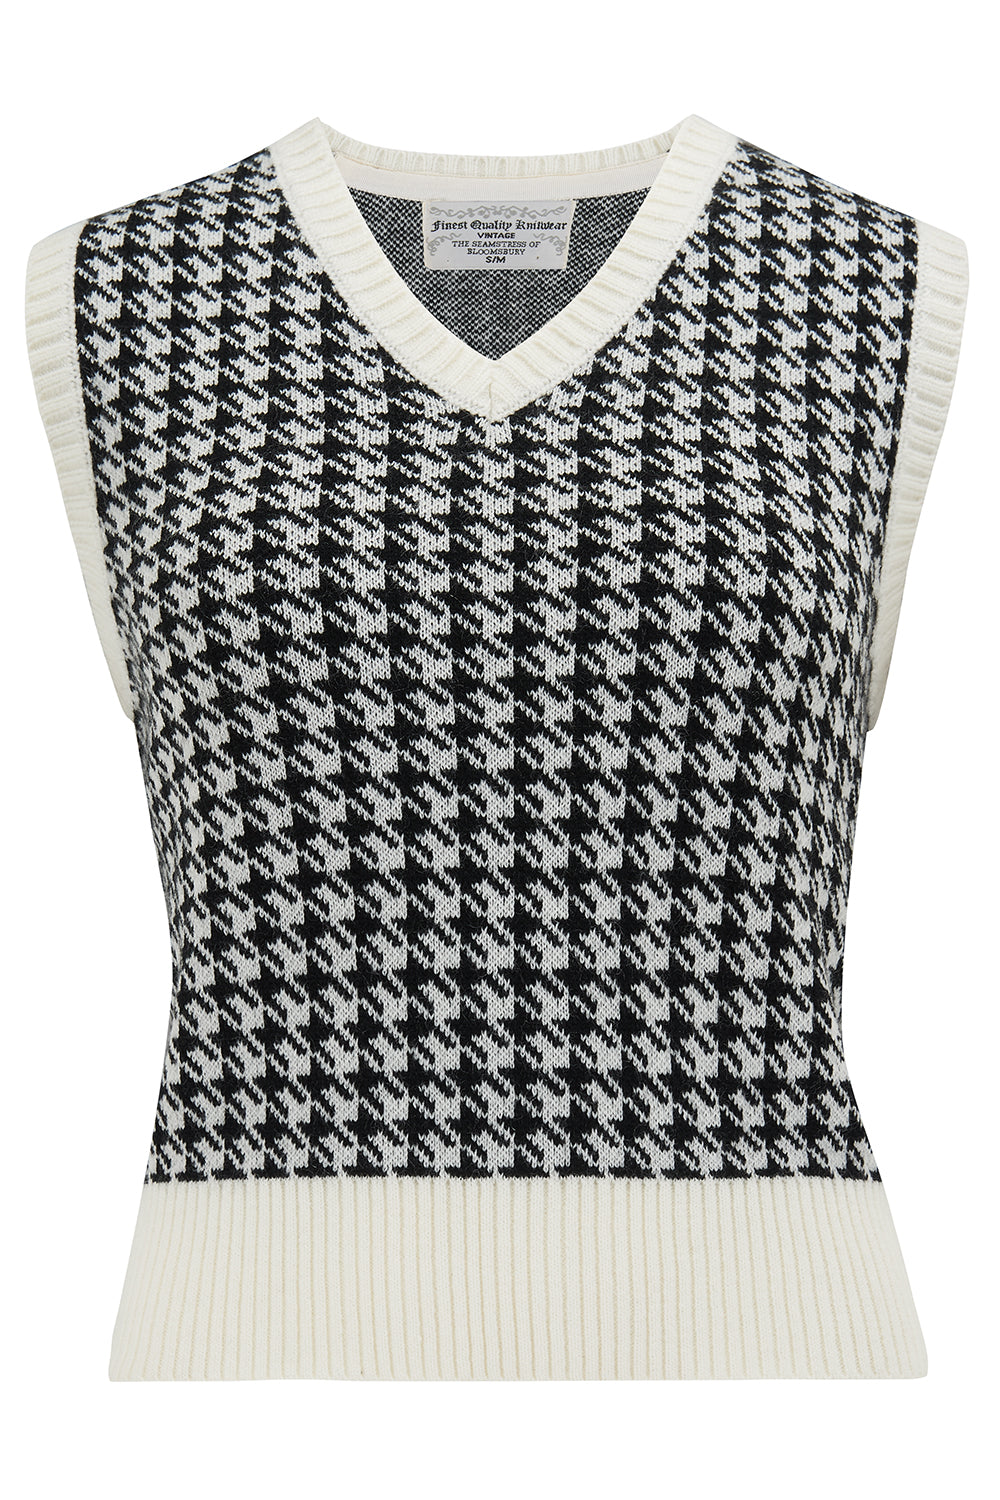 1940s Teenage Fashion: Girls Cable Knit Slipover in Hounds Tooth Stunning 1940s True Vintage Style £29.00 AT vintagedancer.com